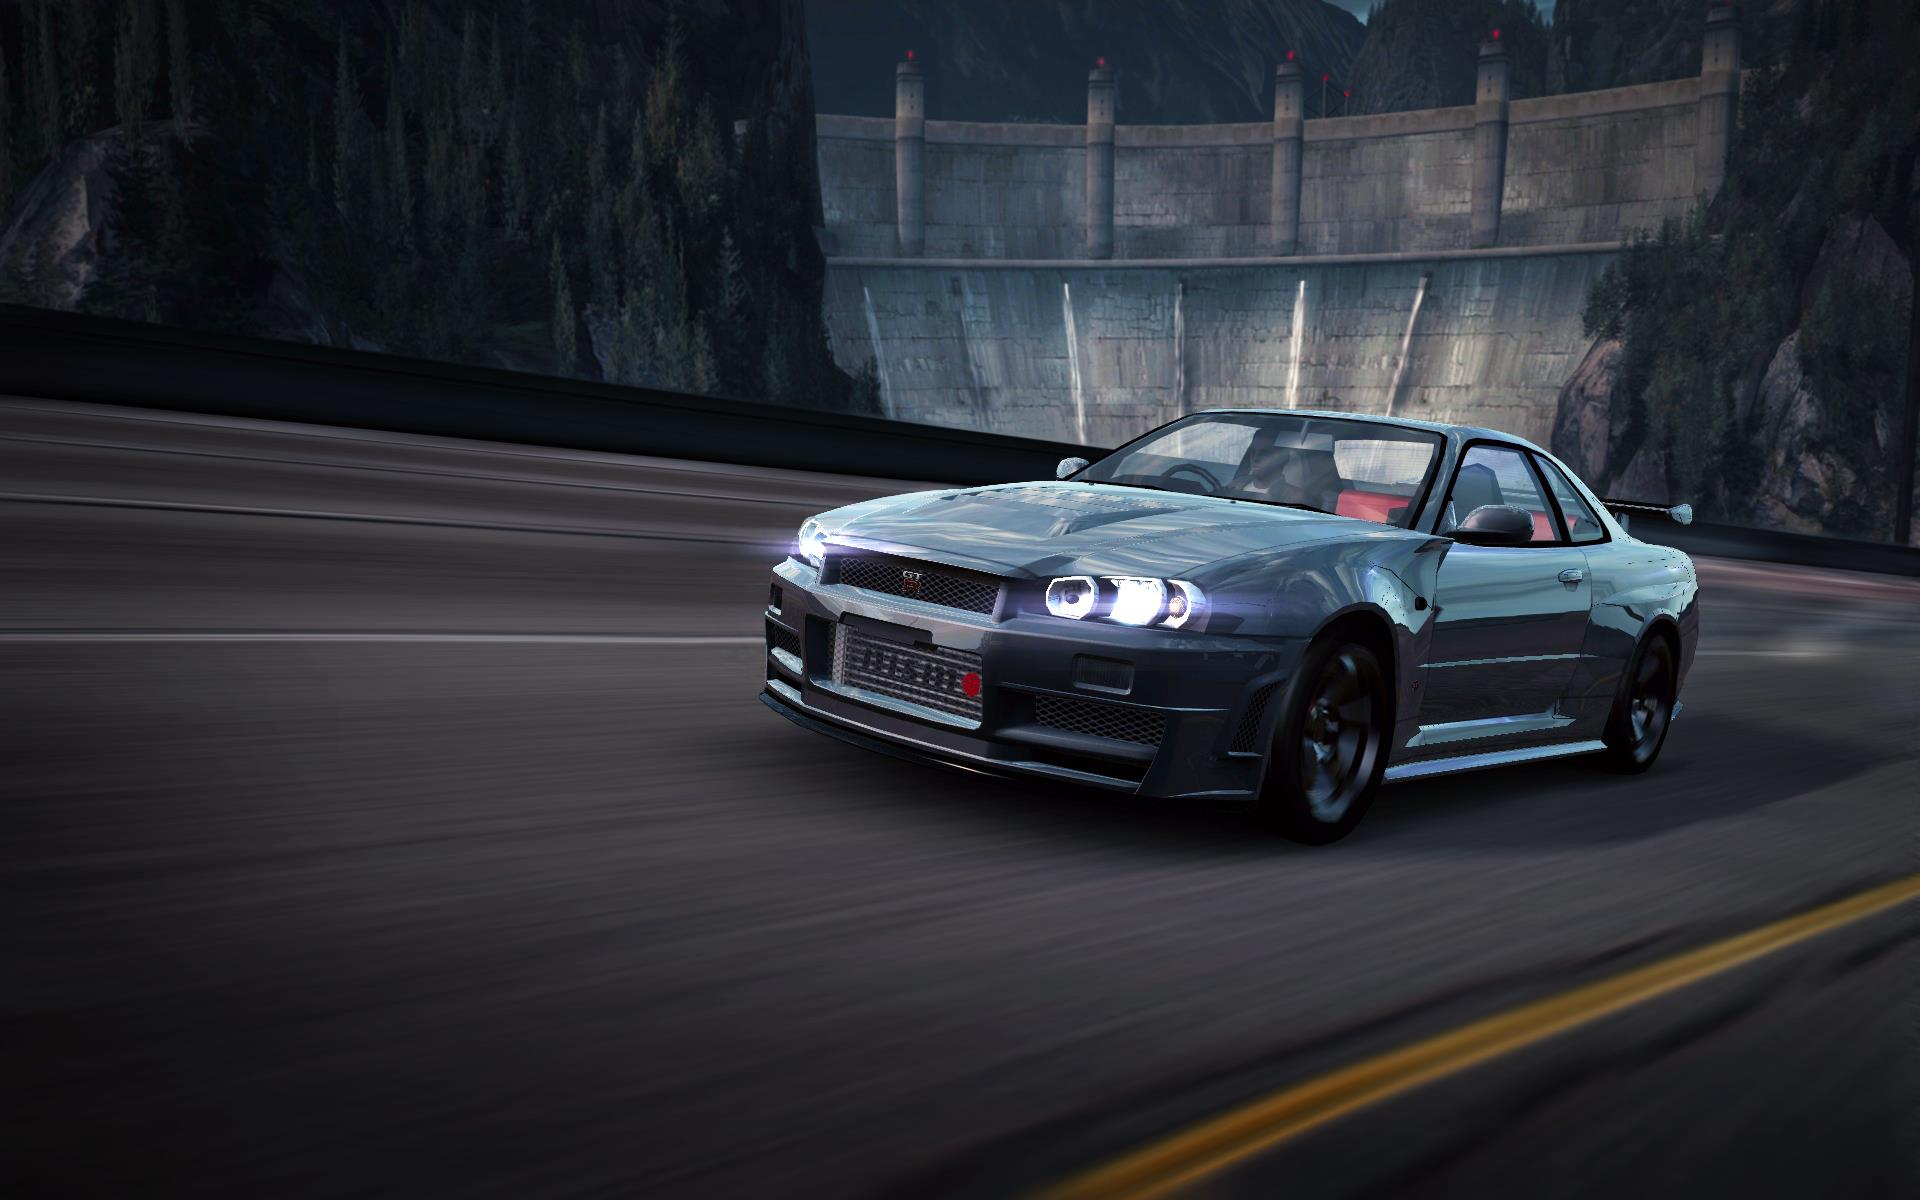 nissan skyline gt r r34 nismo z tune nfs world wiki fandom powered by wikia. Black Bedroom Furniture Sets. Home Design Ideas